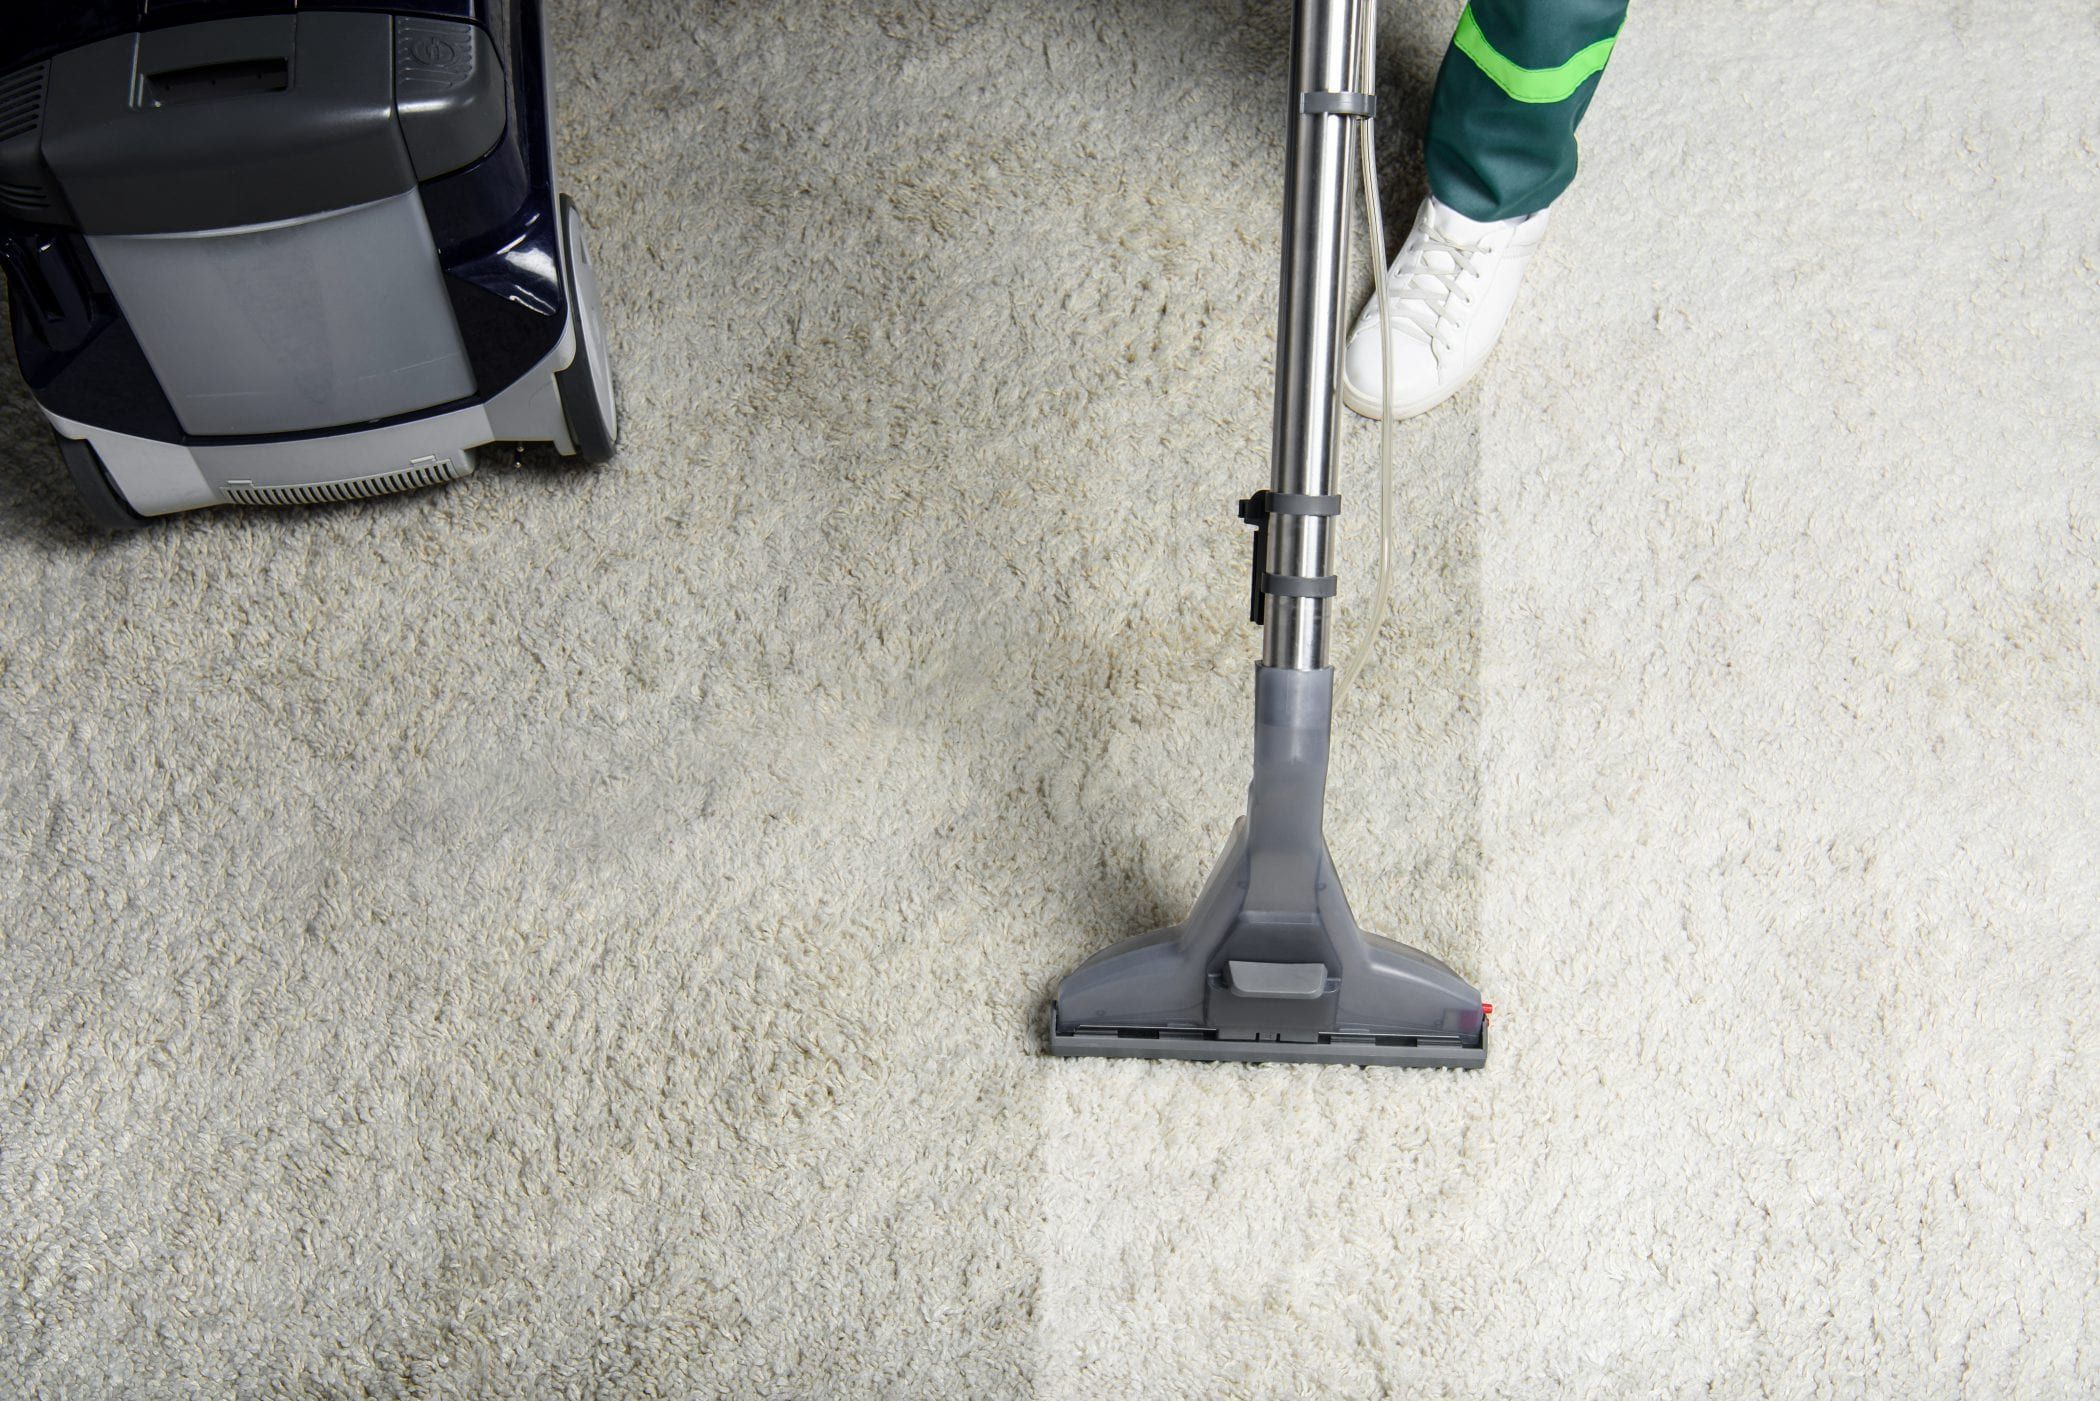 Are you looking for a Quality Carpet & Upholstery cleaning in Mercer County and the surrounding area? Carpet Cleaners in New Jersey   100% Green Carpet Cleaning Services. We will clean your carpets, area rugs, furniture, upholstery, hardwood floor, tile & grout. Call Now! Carpet Cleaning Air Duct Cleaning Dryer Vent Cleaning Upholstery Cleaning Commercial Cleaning # #carpetcleaning #carpetcleaning #CarpetCleaning #Cleaningservices #Cleaningcompany #NjCleaning #Cleaningnj #Carpetcleaningnj